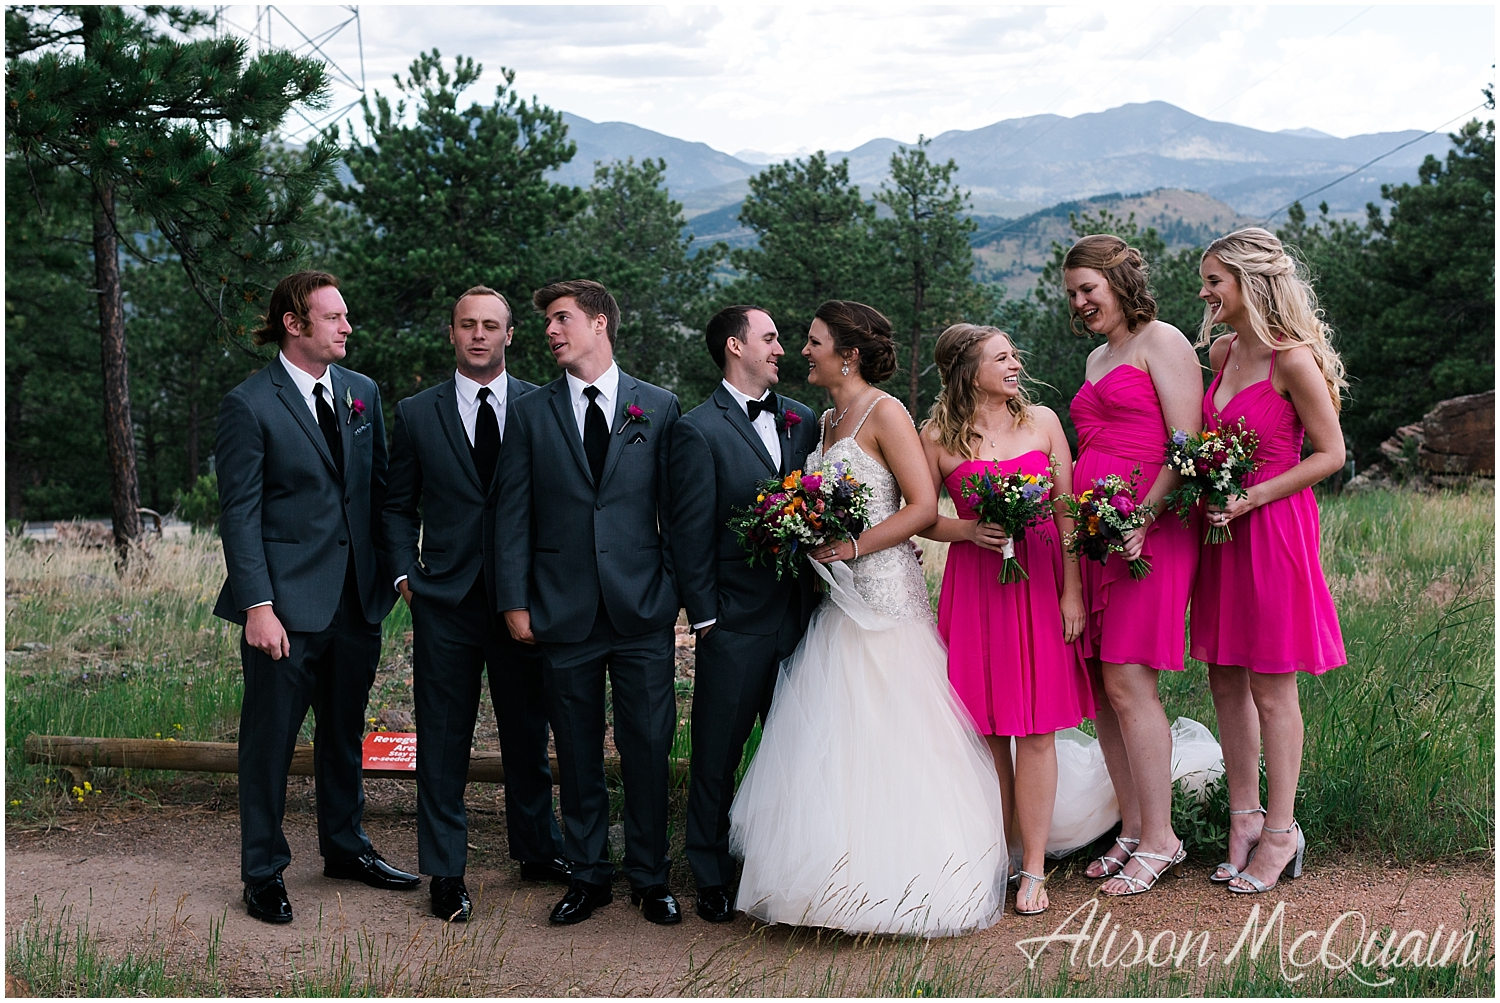 AandJ_Wedding_BoettcherMansion_Golden_Colorado_6_2018_AMP_0043.jpg